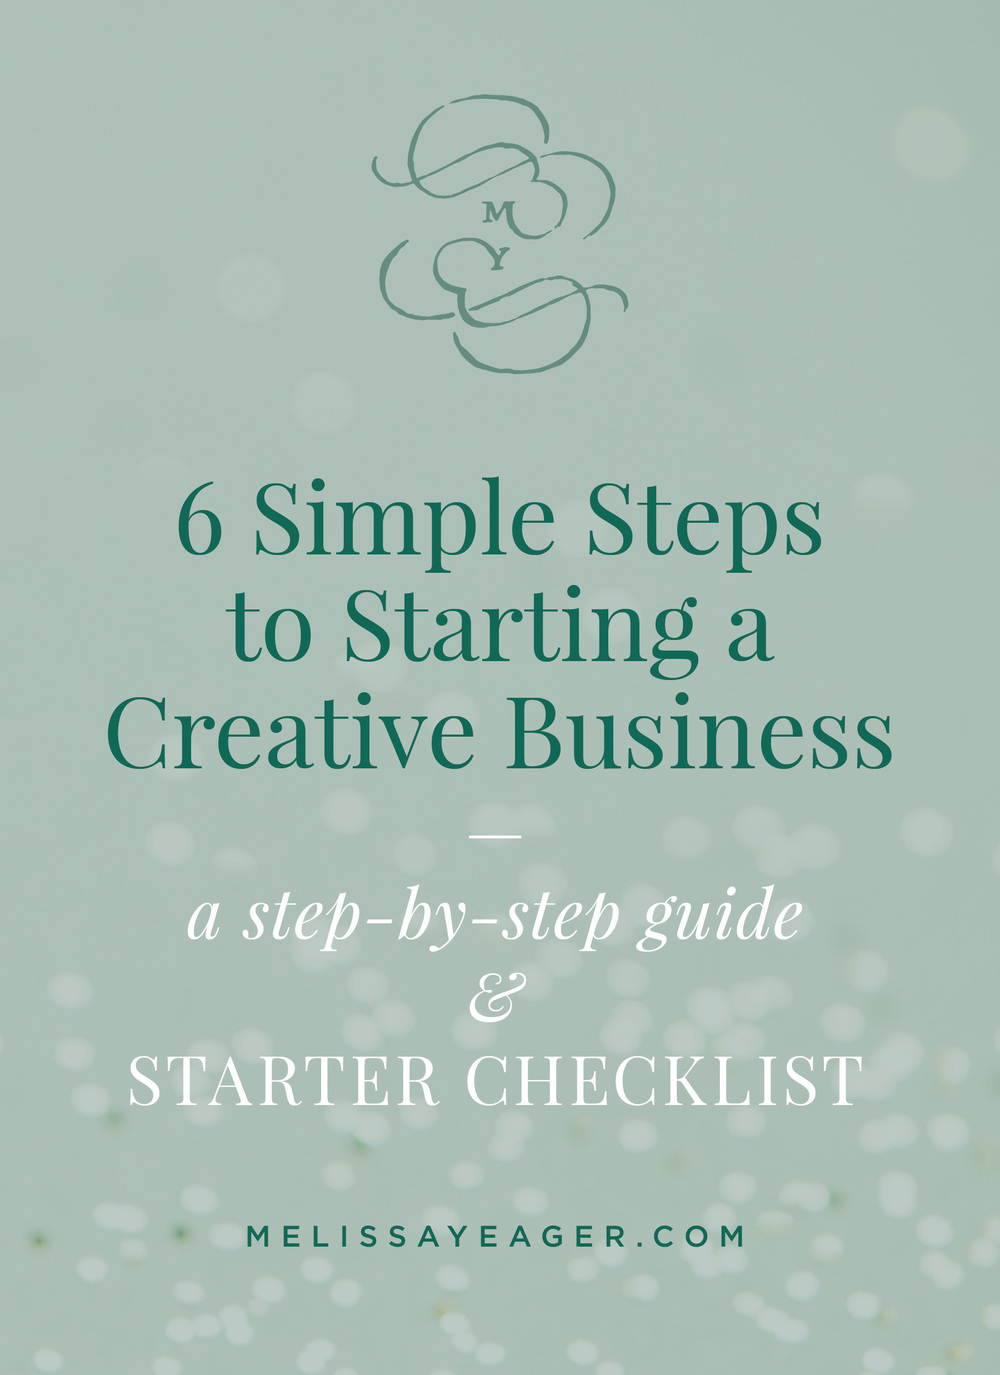 6 Simple Steps to Starting a Creative Business - a step-by-step guide & starter checklist